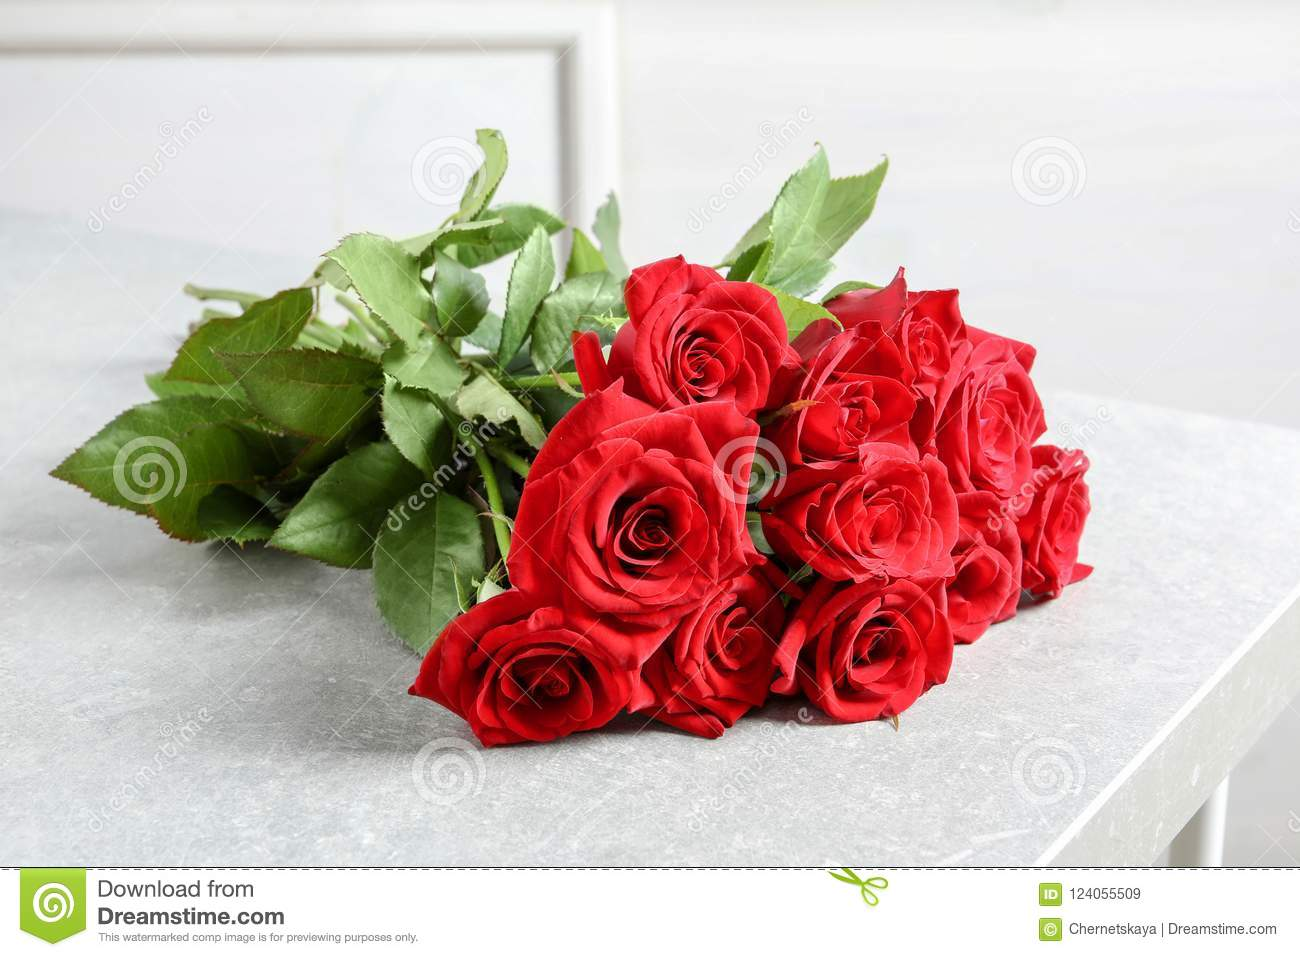 Beautiful Red Rose Flowers On Table Stock Image - Image of color ...